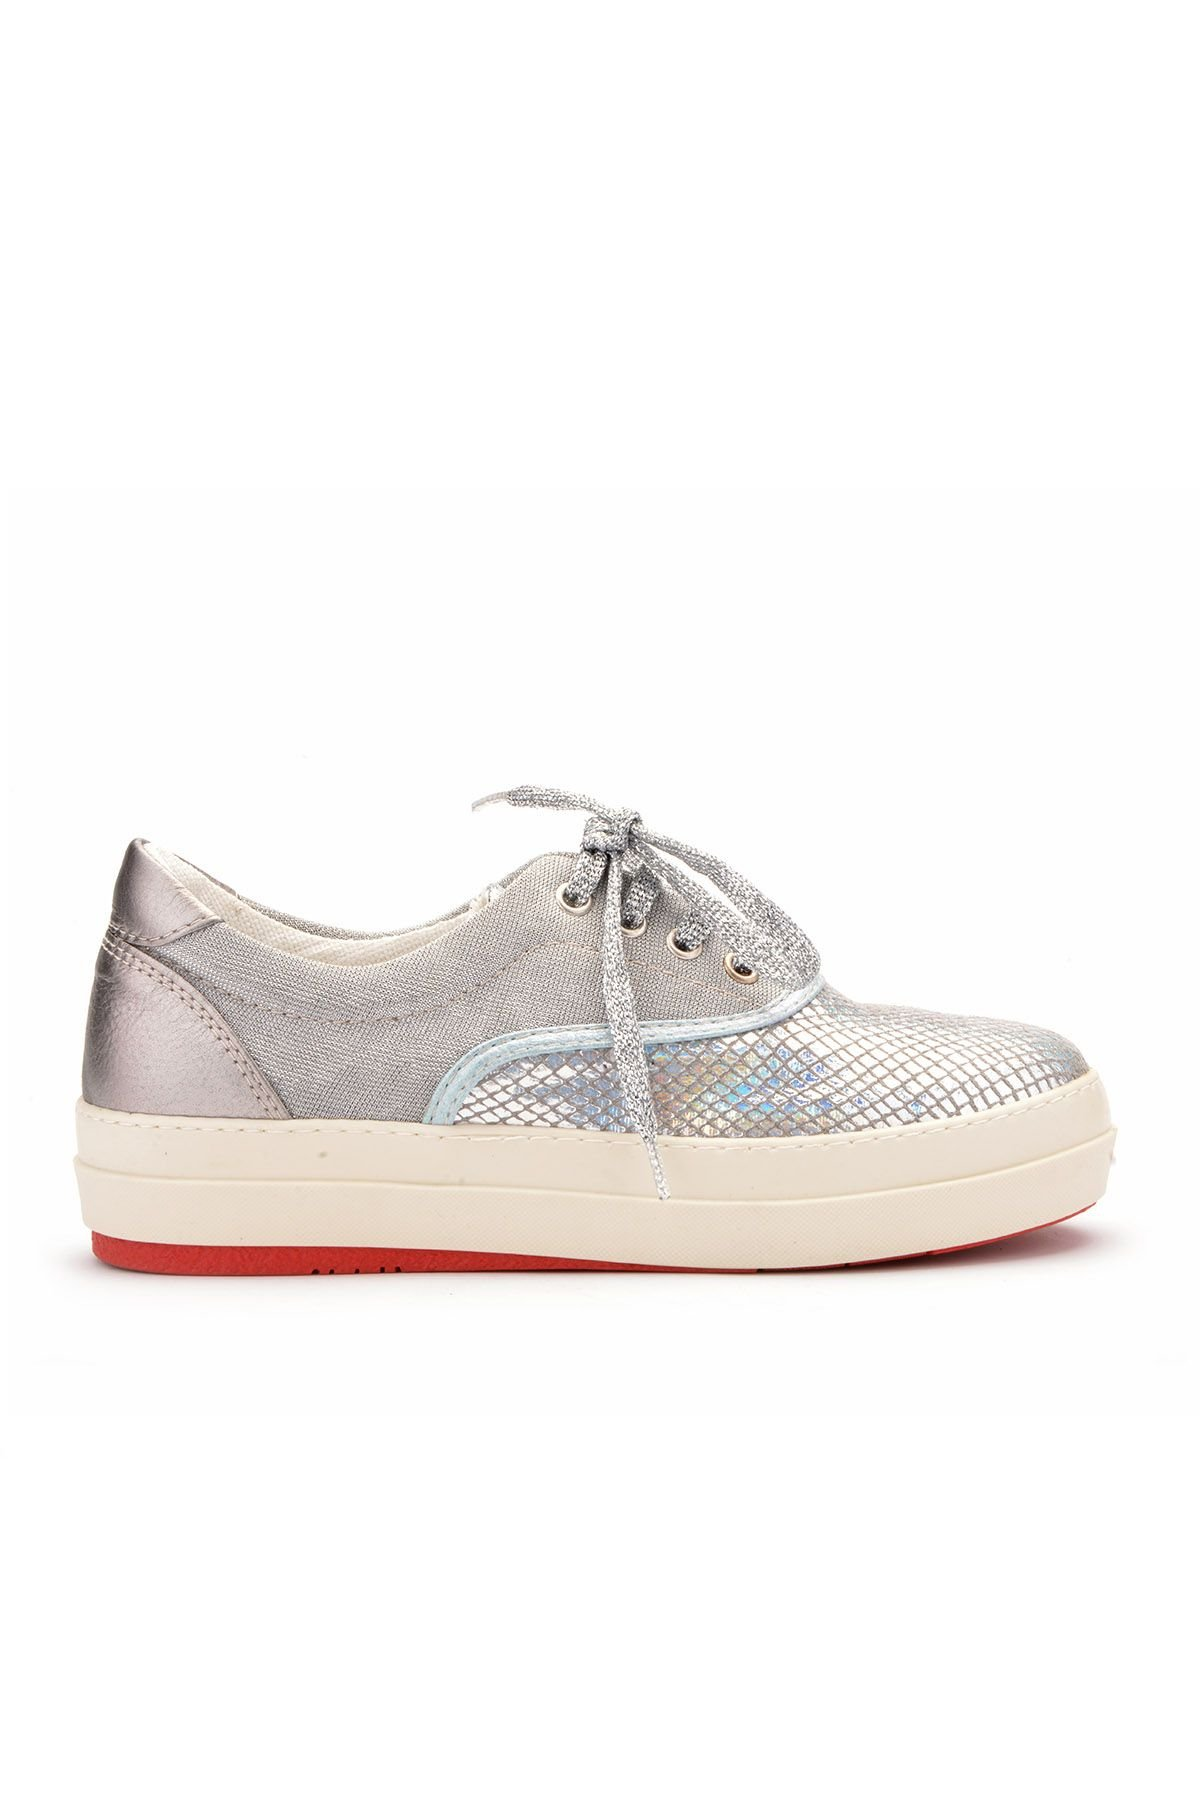 Art Goya Casual Women Shoes With Hologramme Silver